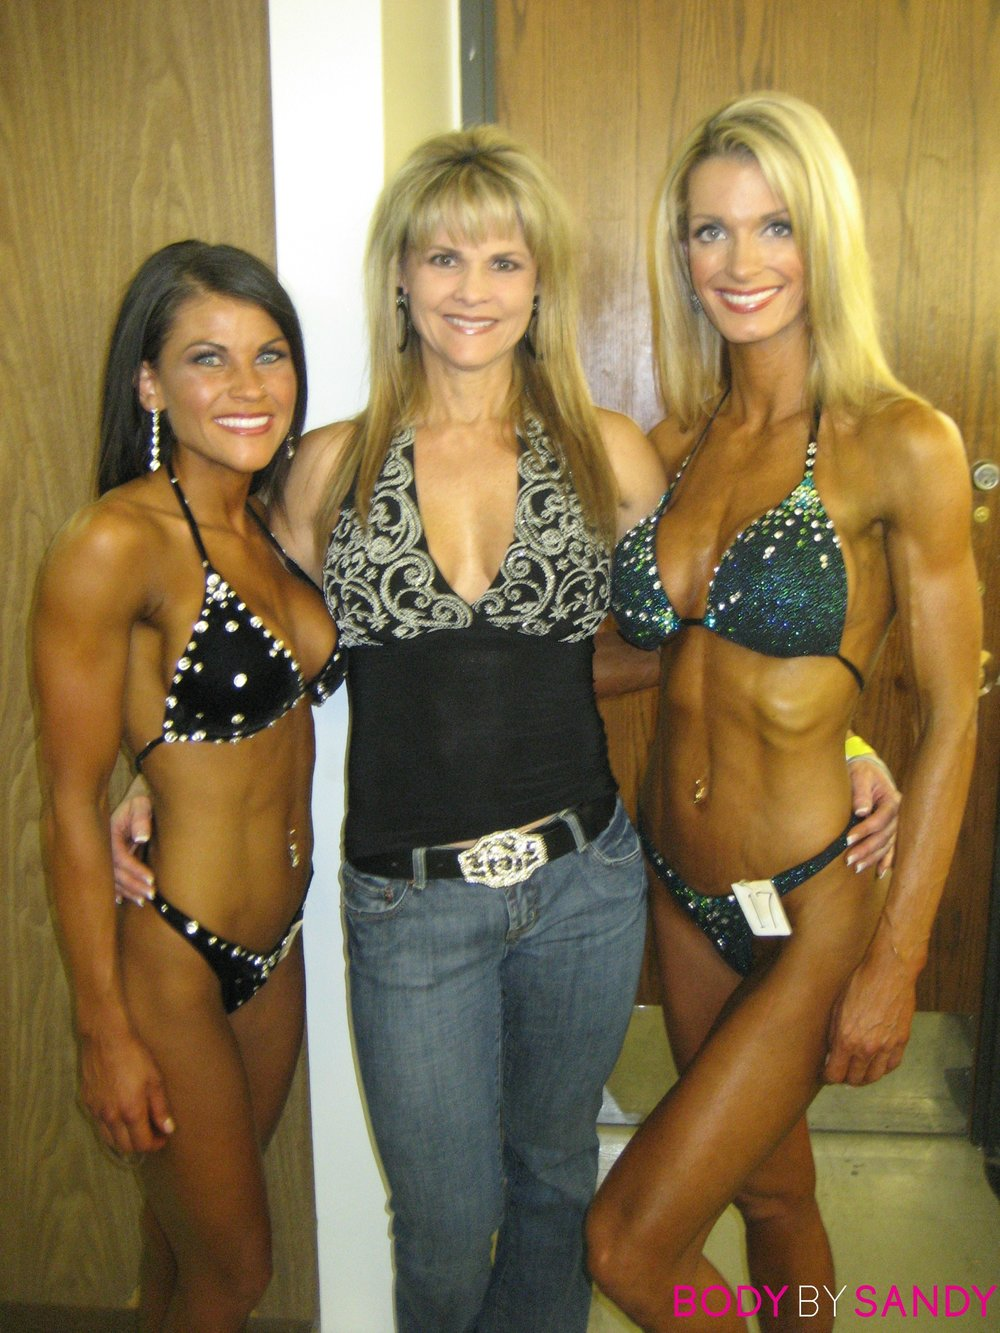 2007 NPC Utah Classic-Tiara, Liz and Me backstage2.jpg